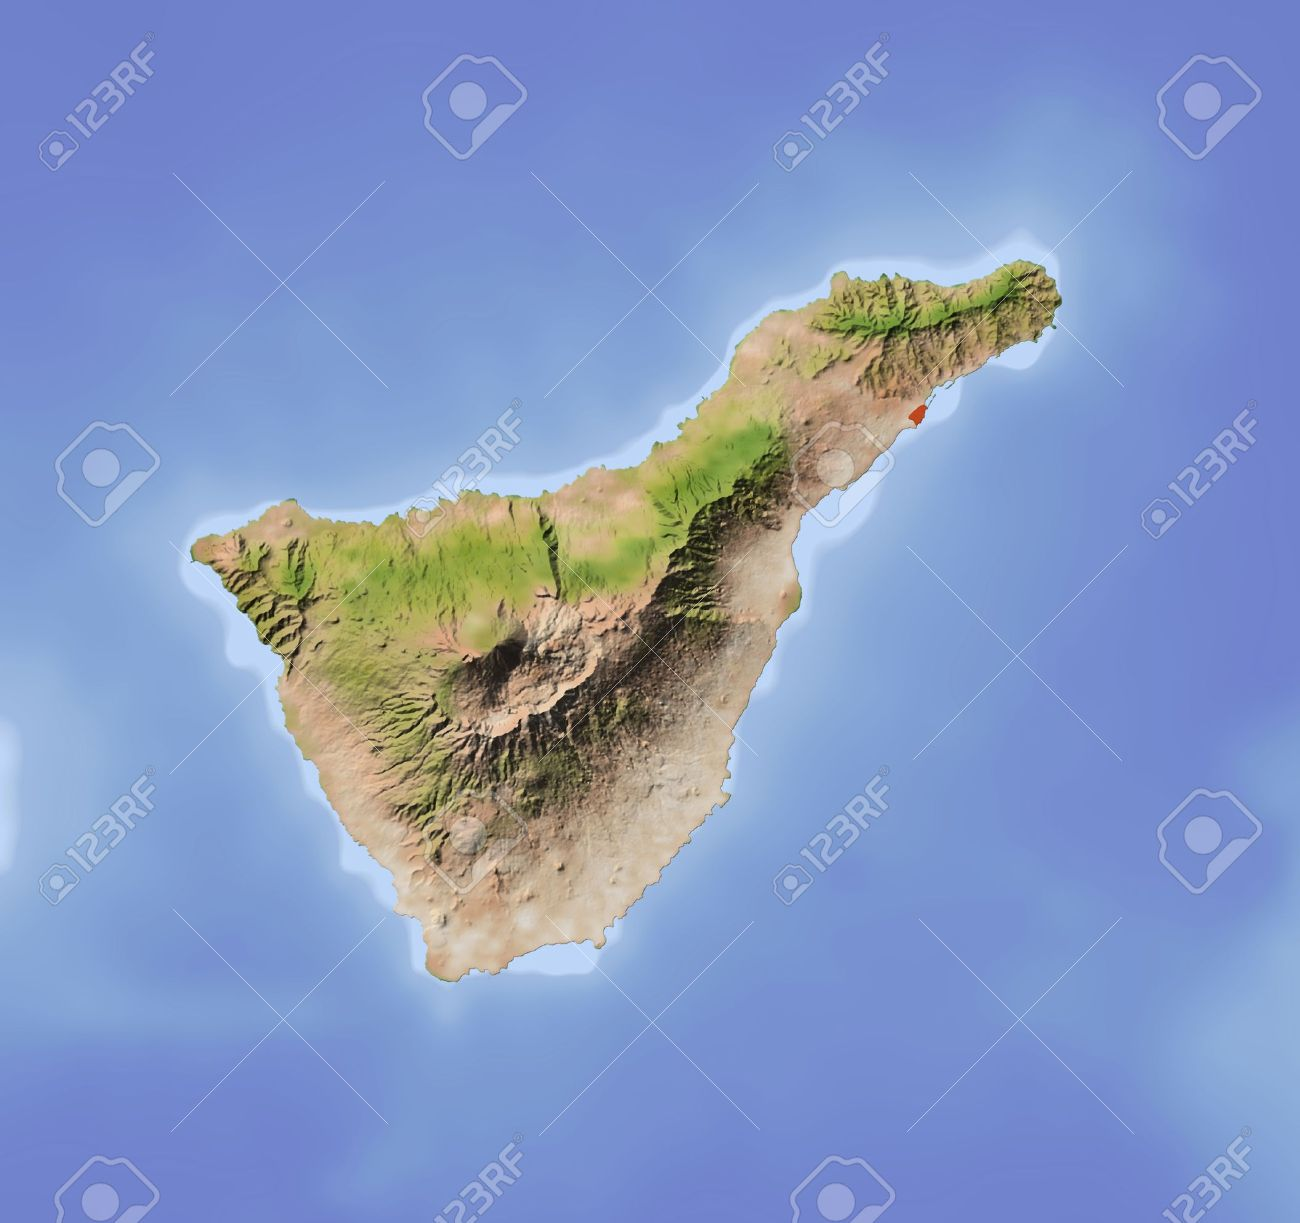 Tenerife. Shaded relief map. Colored according to vegetation. Includes clip path for the land area.Projection: MercatorExtents: -17.1/-15.9/27.8/28.8 - 11687615